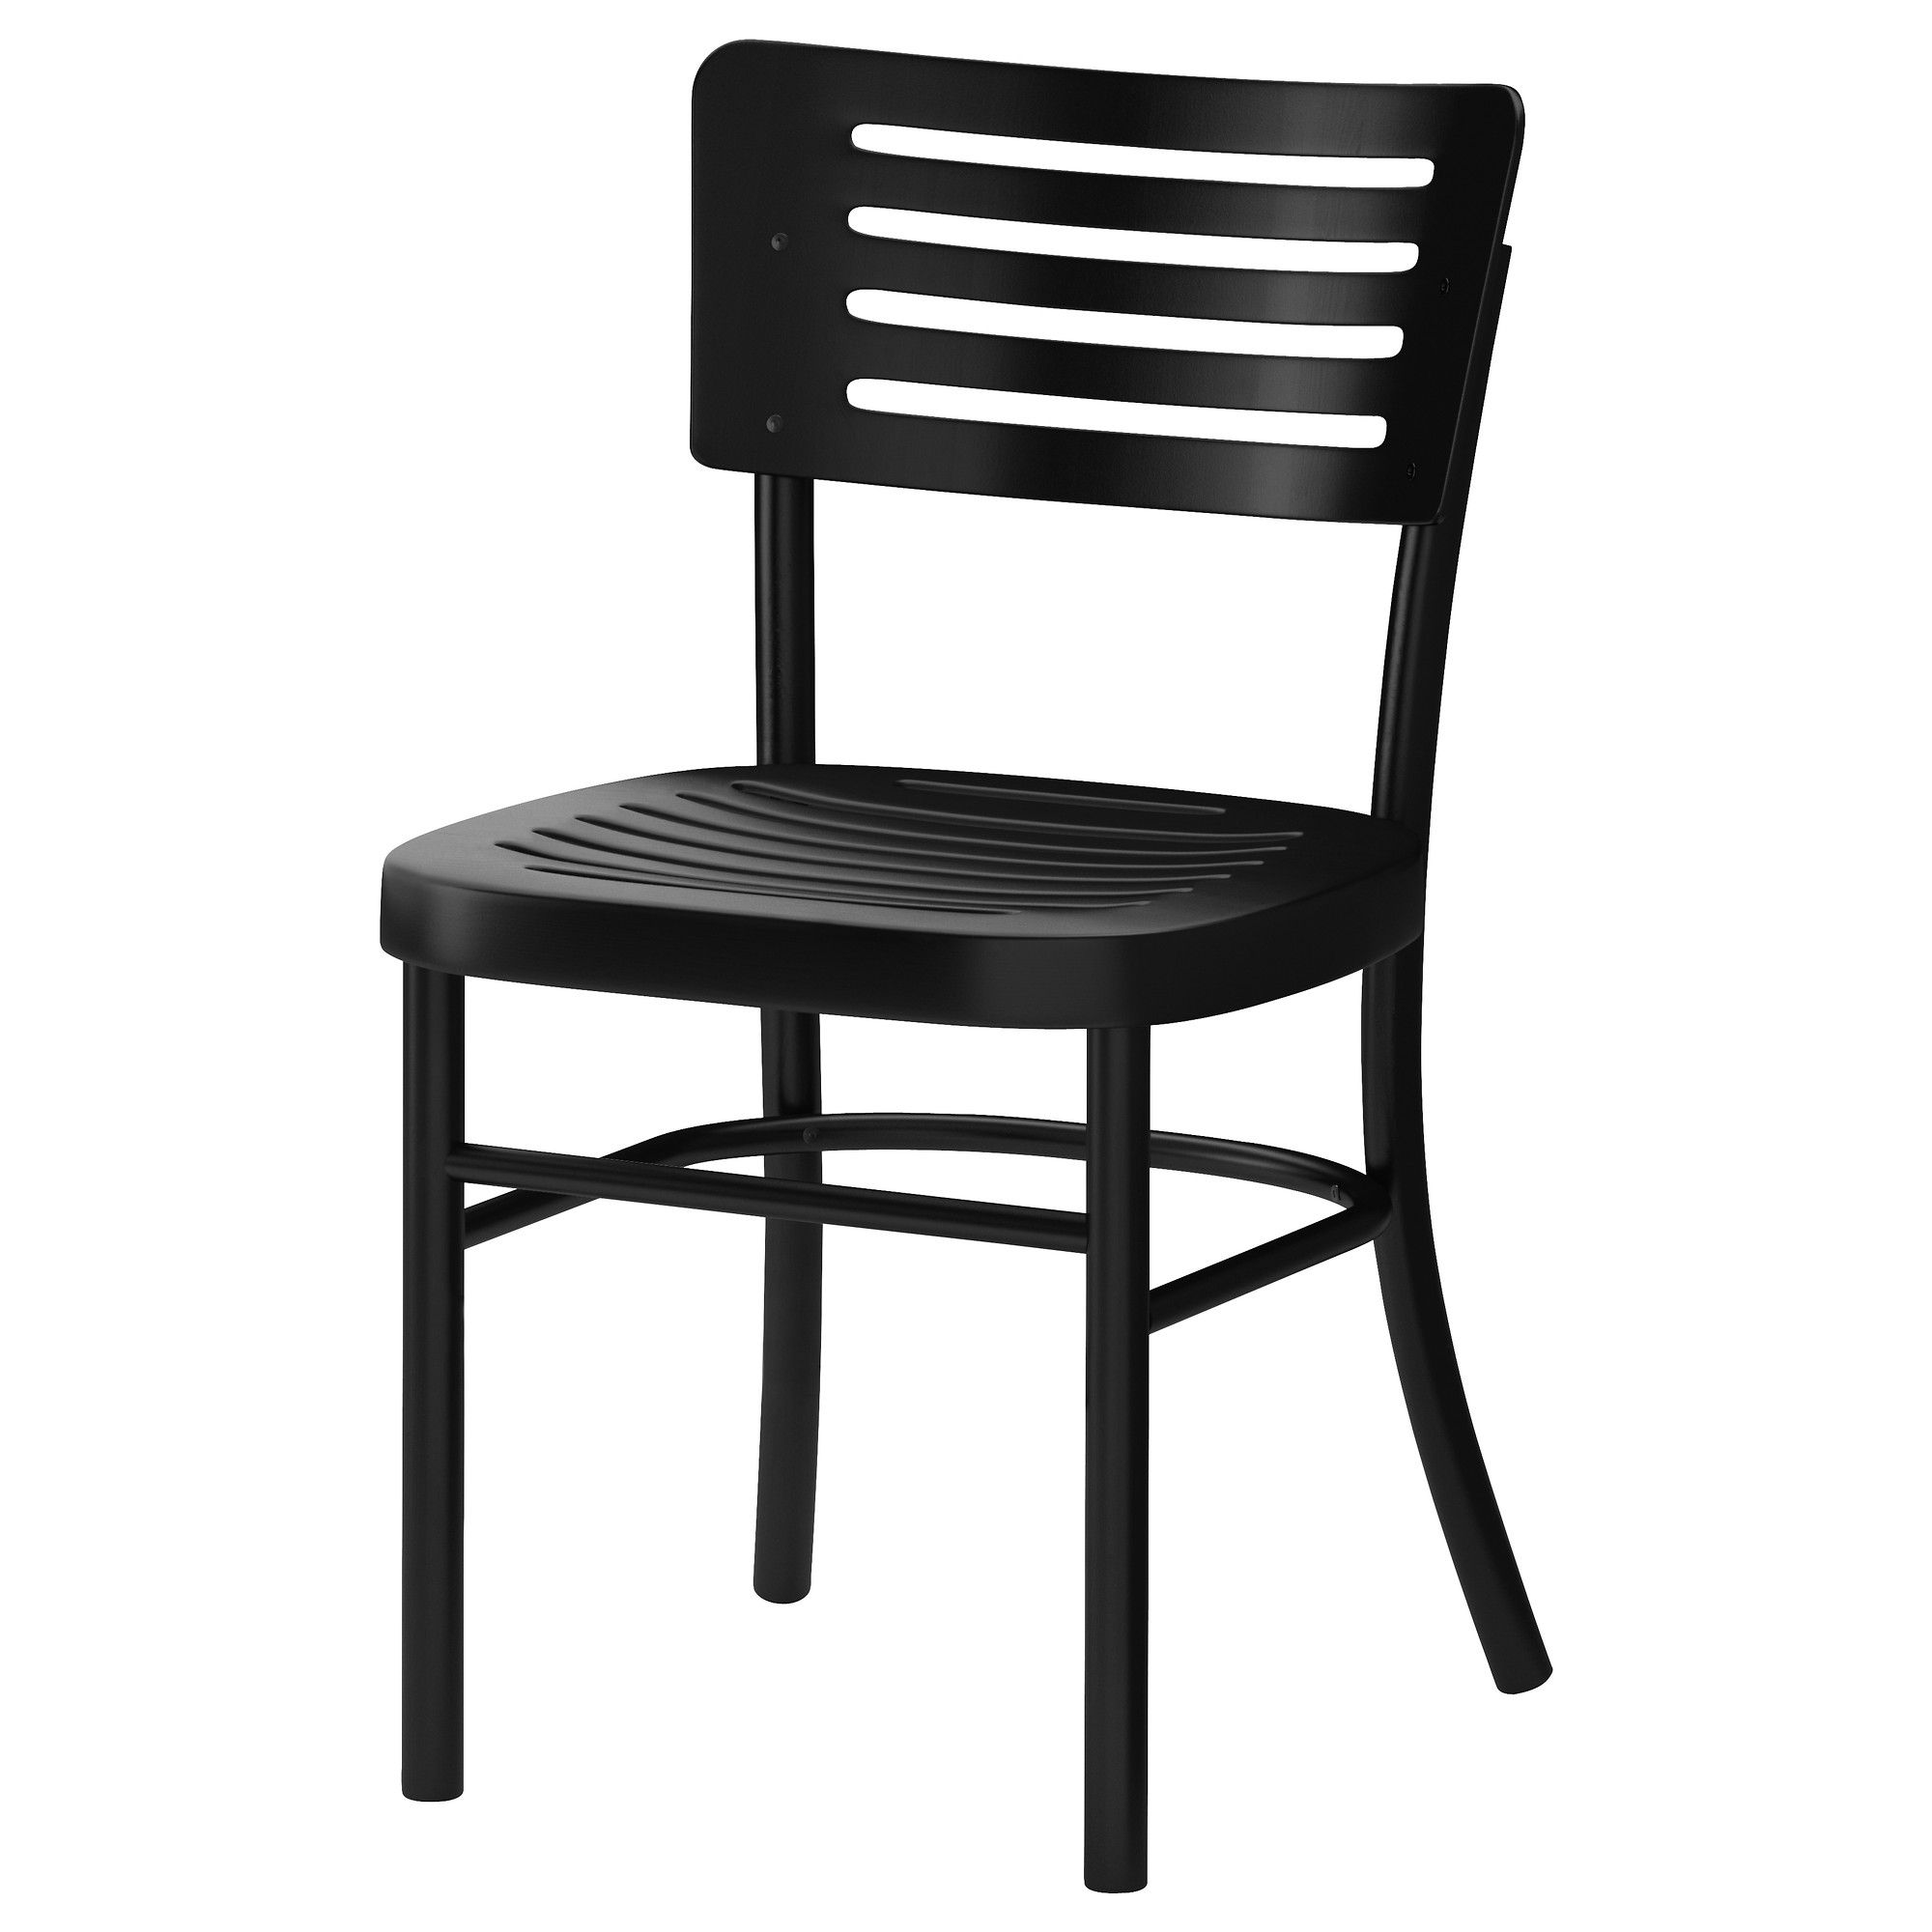 Ikea Kitchen Chairs Ikea Kitchen Chairs And Tables Ikea Kitchen ...